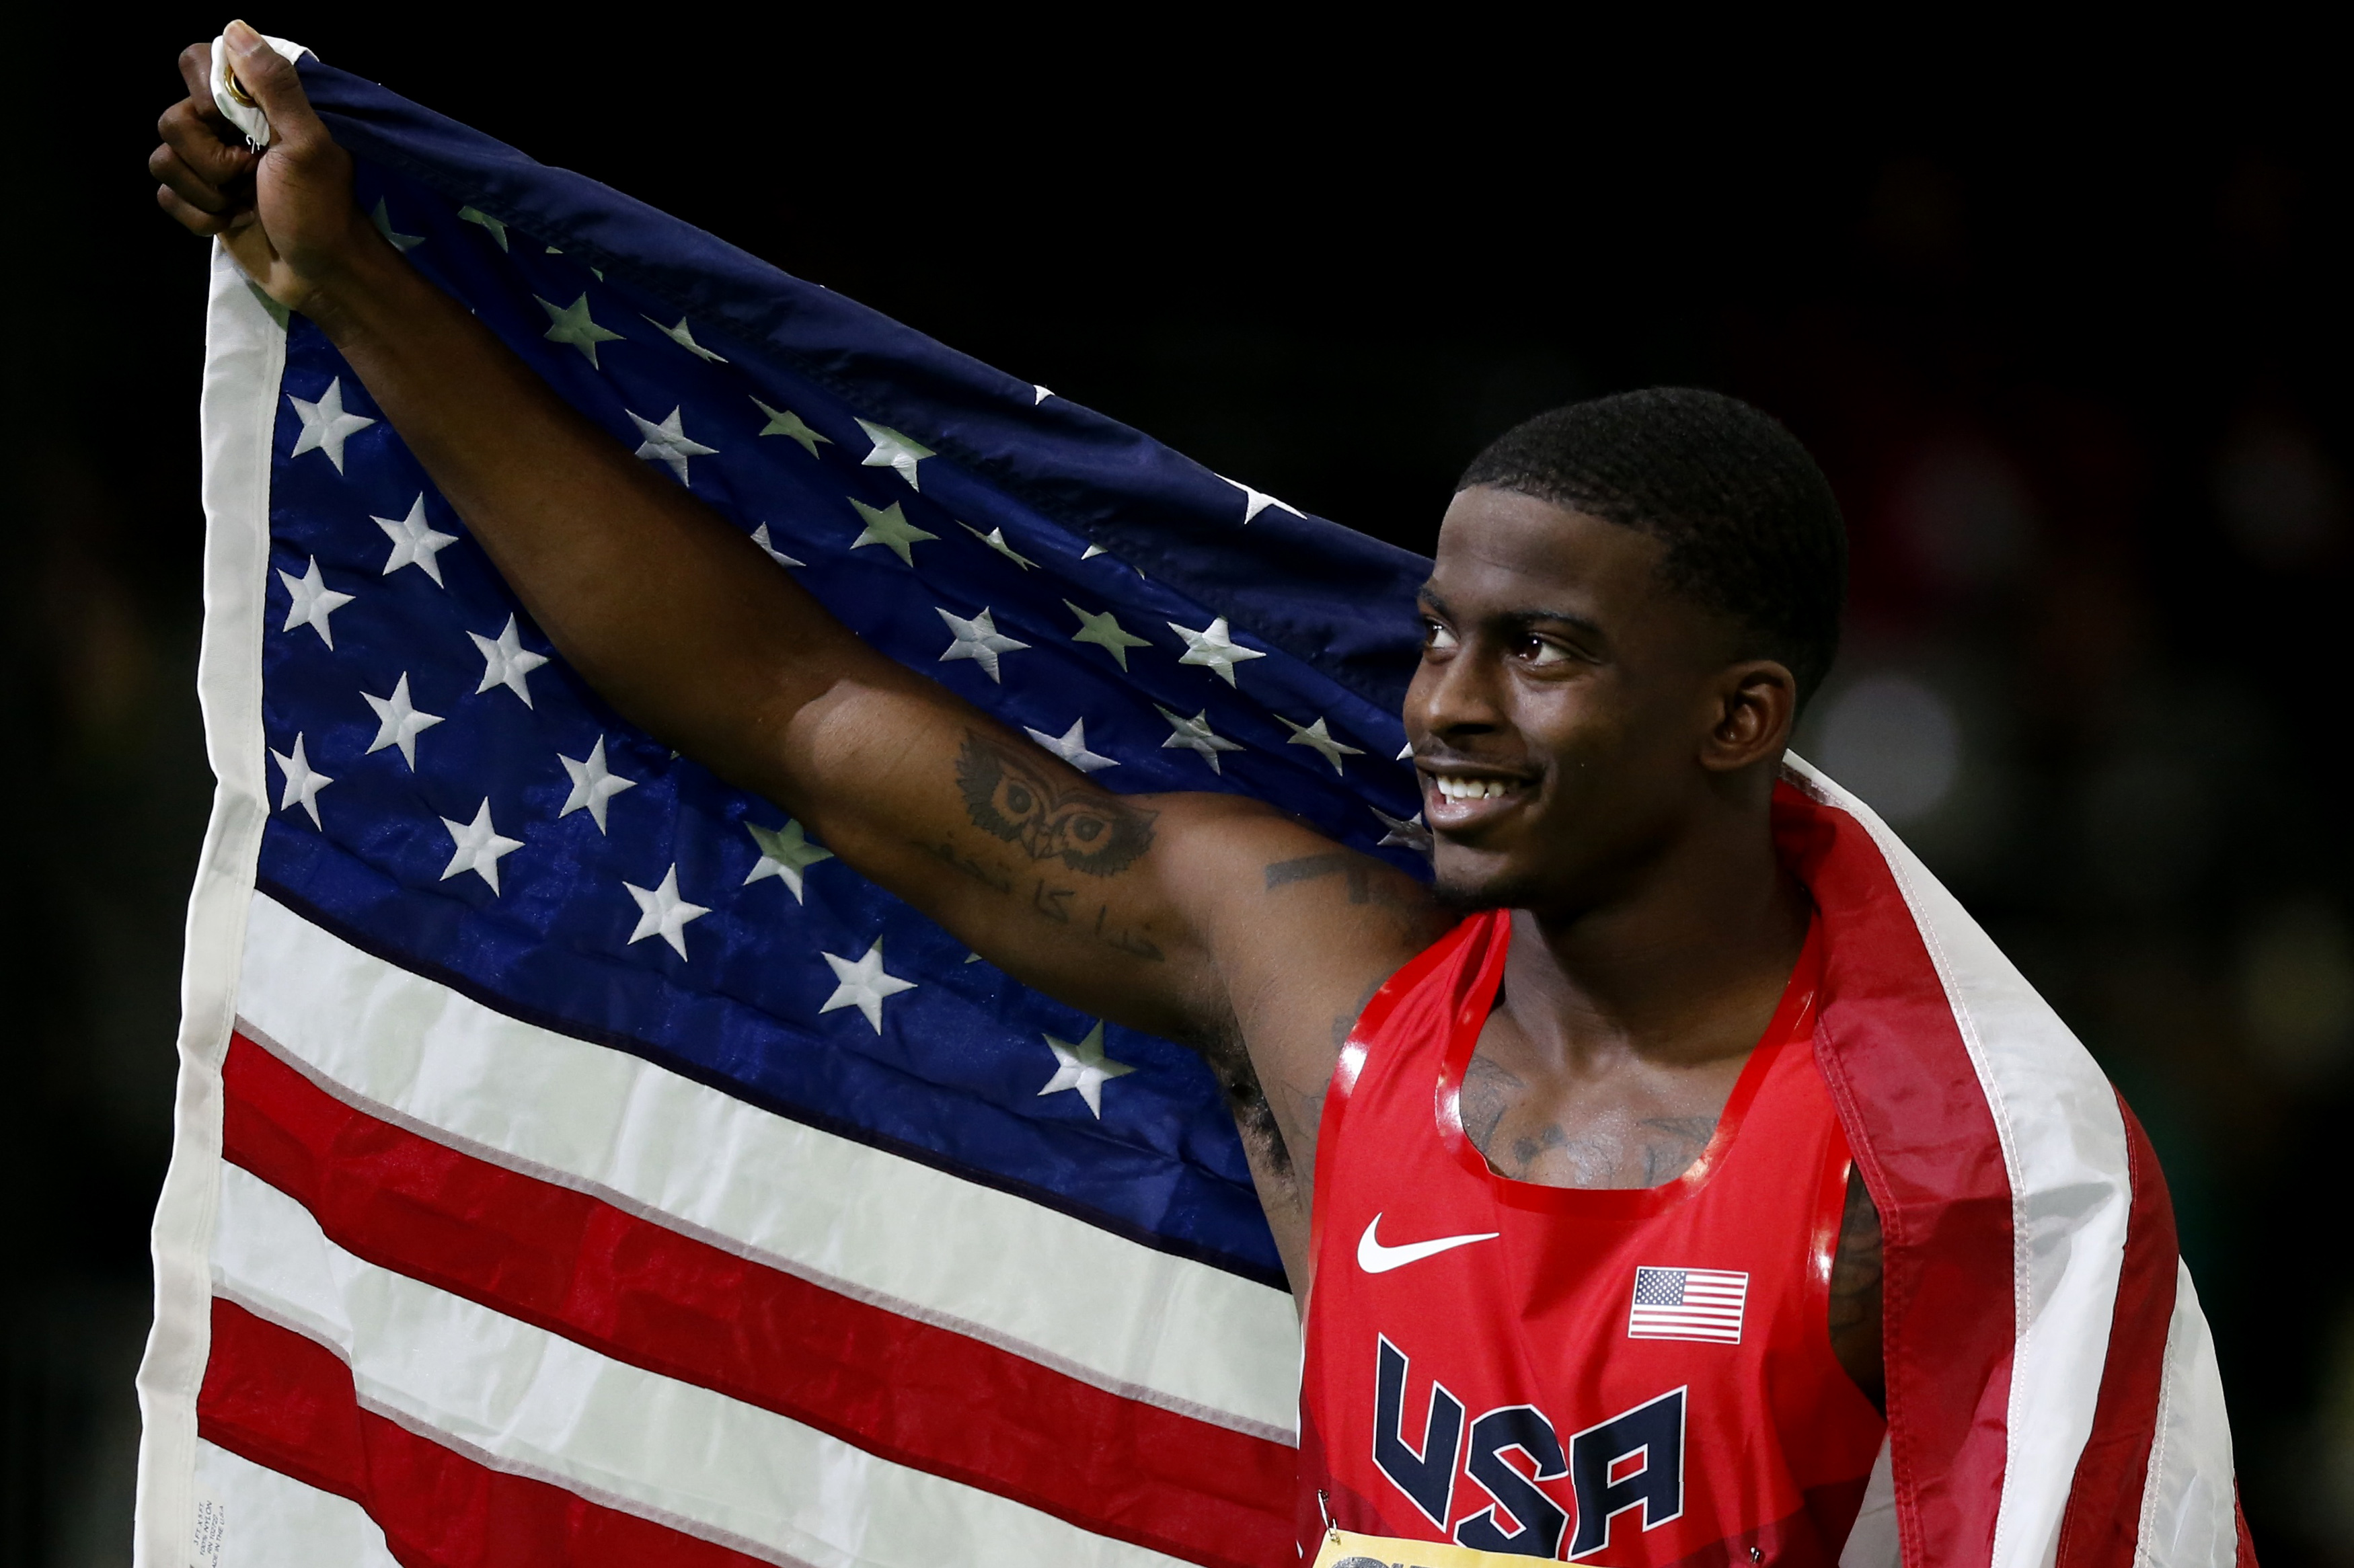 Trayvon Bromell of the U.S. celebrates with an American flag after winning the gold medal in the men's 60 meters at the IAAF World Indoor Athletics Championships in Portland, Oregon March 18, 2016.   REUTERS/Lucy Nicholson